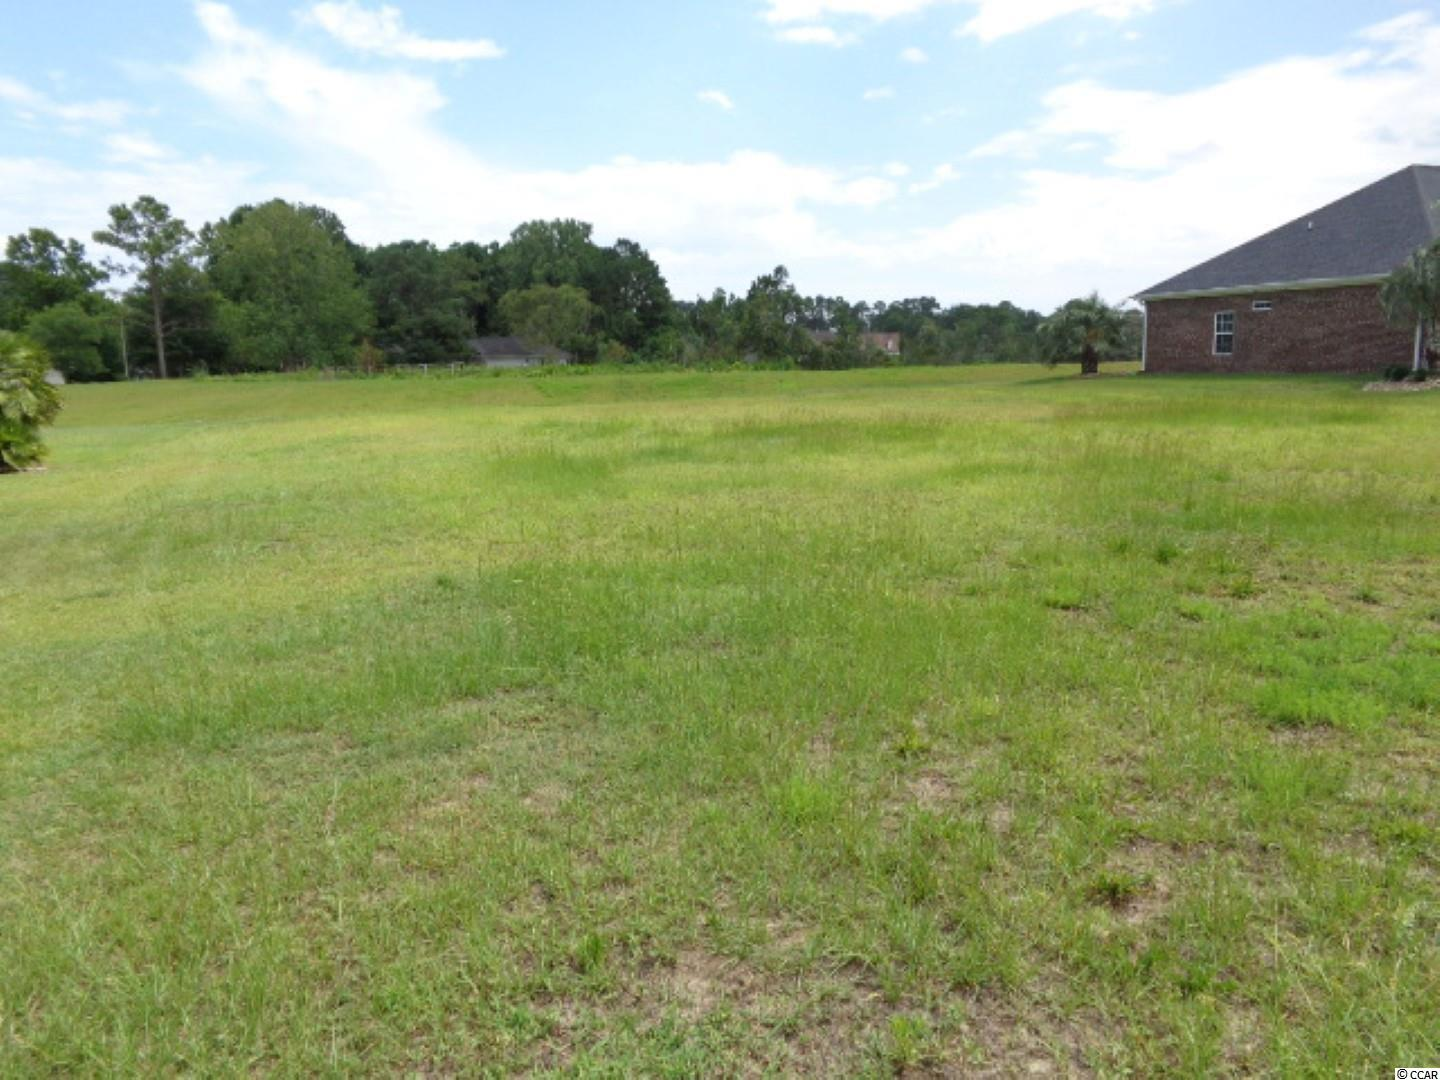 Location! Location!  THIS OVERSIZED LOT LOCATED JUST ACROSS THE STREET FROM THE ICW IS WAITING FOR YOU TO COME AND BUILD YOUR DREAM HOME. SITUATED IN THE CORAL LANDING DEVELOPMENT IN THE HEART OF NORTH MYRTLE BEACH. Measurements are approximate and not guaranteed. Buyer responsible for verification.